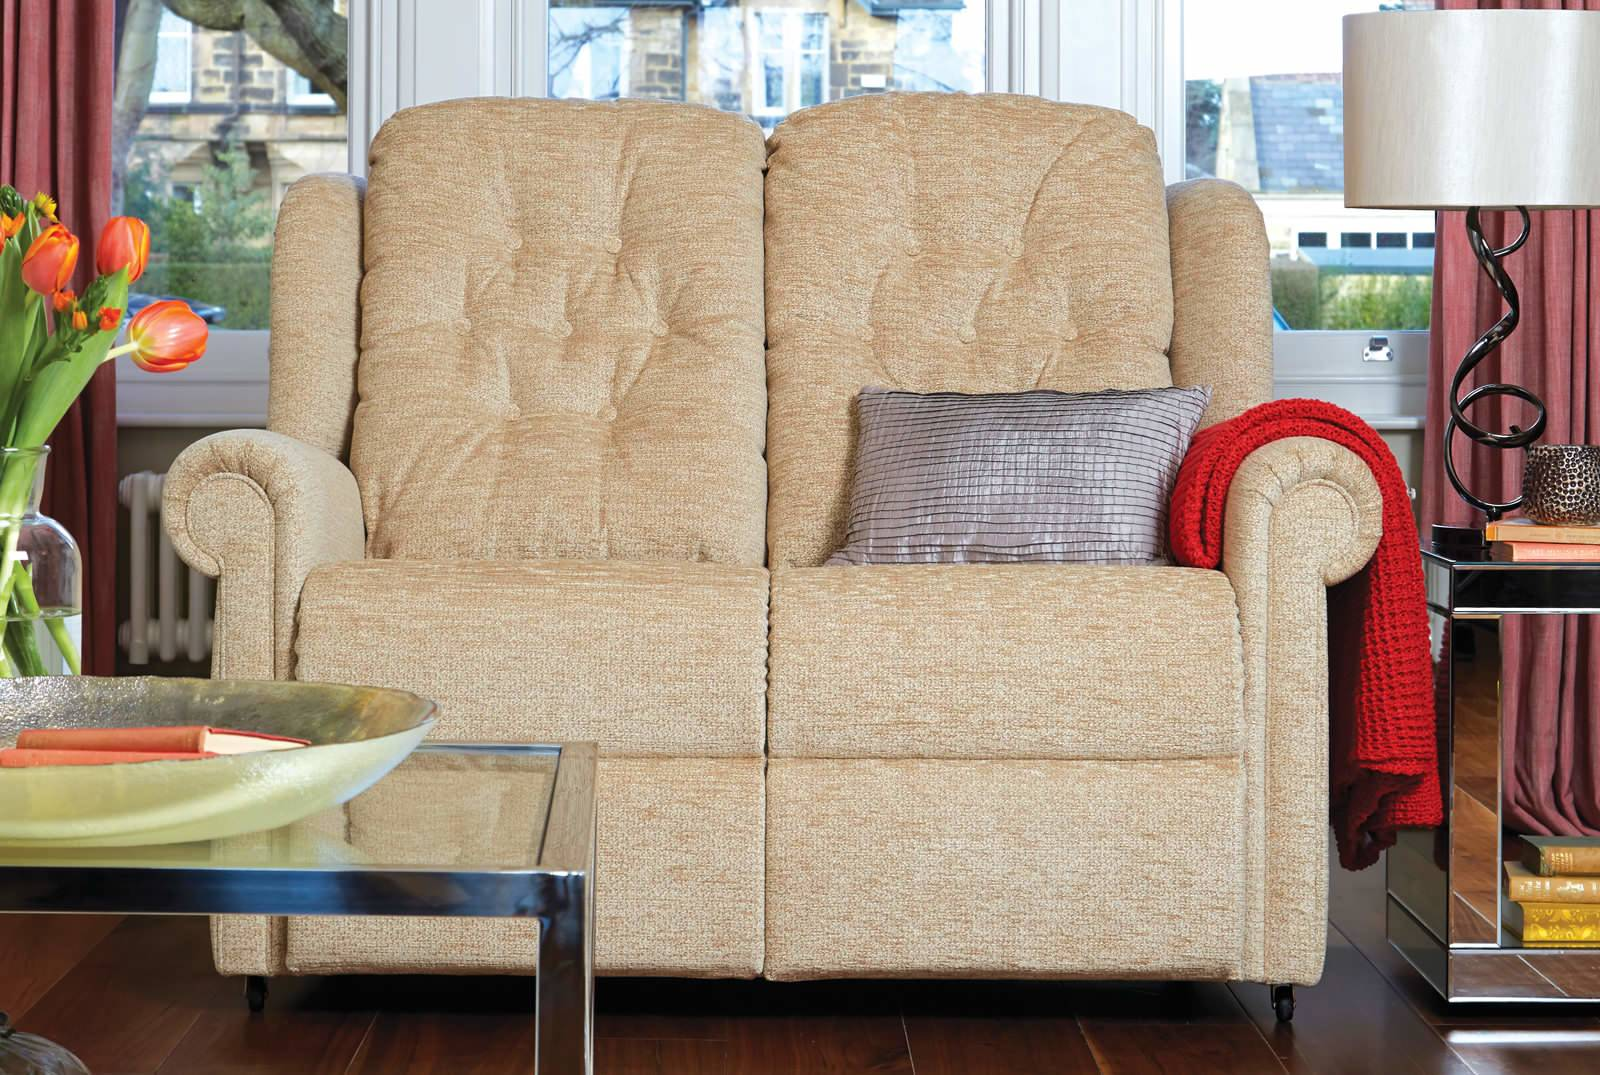 Hampton Two-Seater Comfort Sofa in Boucle Jute